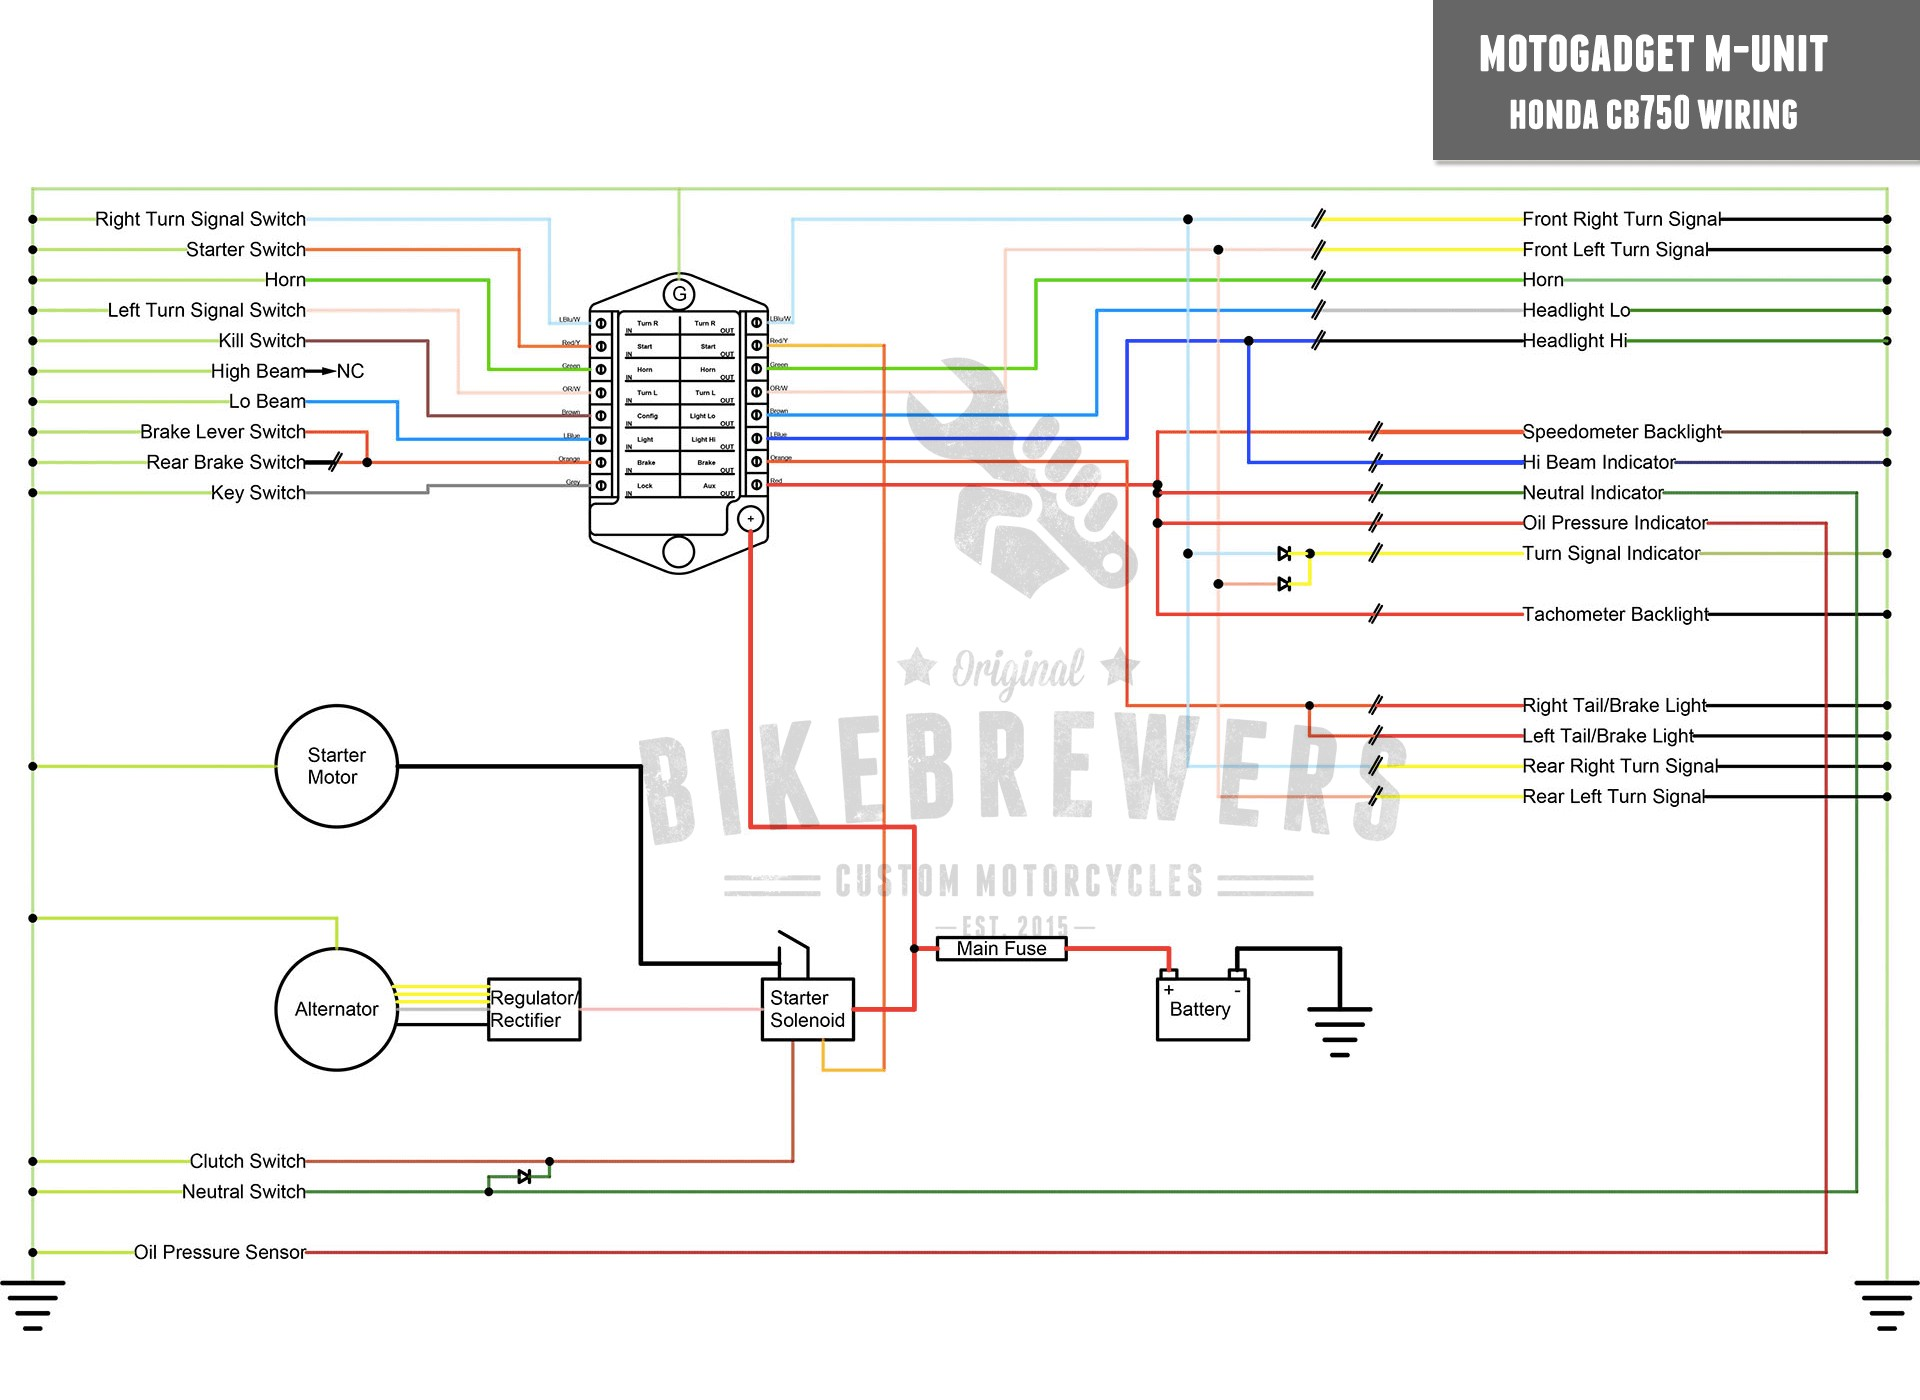 Wiring Diagram Ke Controller Installation Control | Wiring Diagram on 2005 f150 headlights, 2005 f150 fuel system, 2005 f150 horn, 2005 f150 starter, 2005 f150 stereo wiring, 2005 f150 chassis, 2005 f150 specifications, 2005 f150 stereo installation, 2005 f150 sub box, 2005 f150 reverse wire, 2005 f150 suspension, 2005 f150 speaker size, 2005 f150 door, 2005 f150 dimensions, 2005 f150 lighting, 2005 f150 switch, 2005 f150 flywheel, 2005 f150 air cleaner, 2005 f150 fuse layout, 2005 f150 battery,